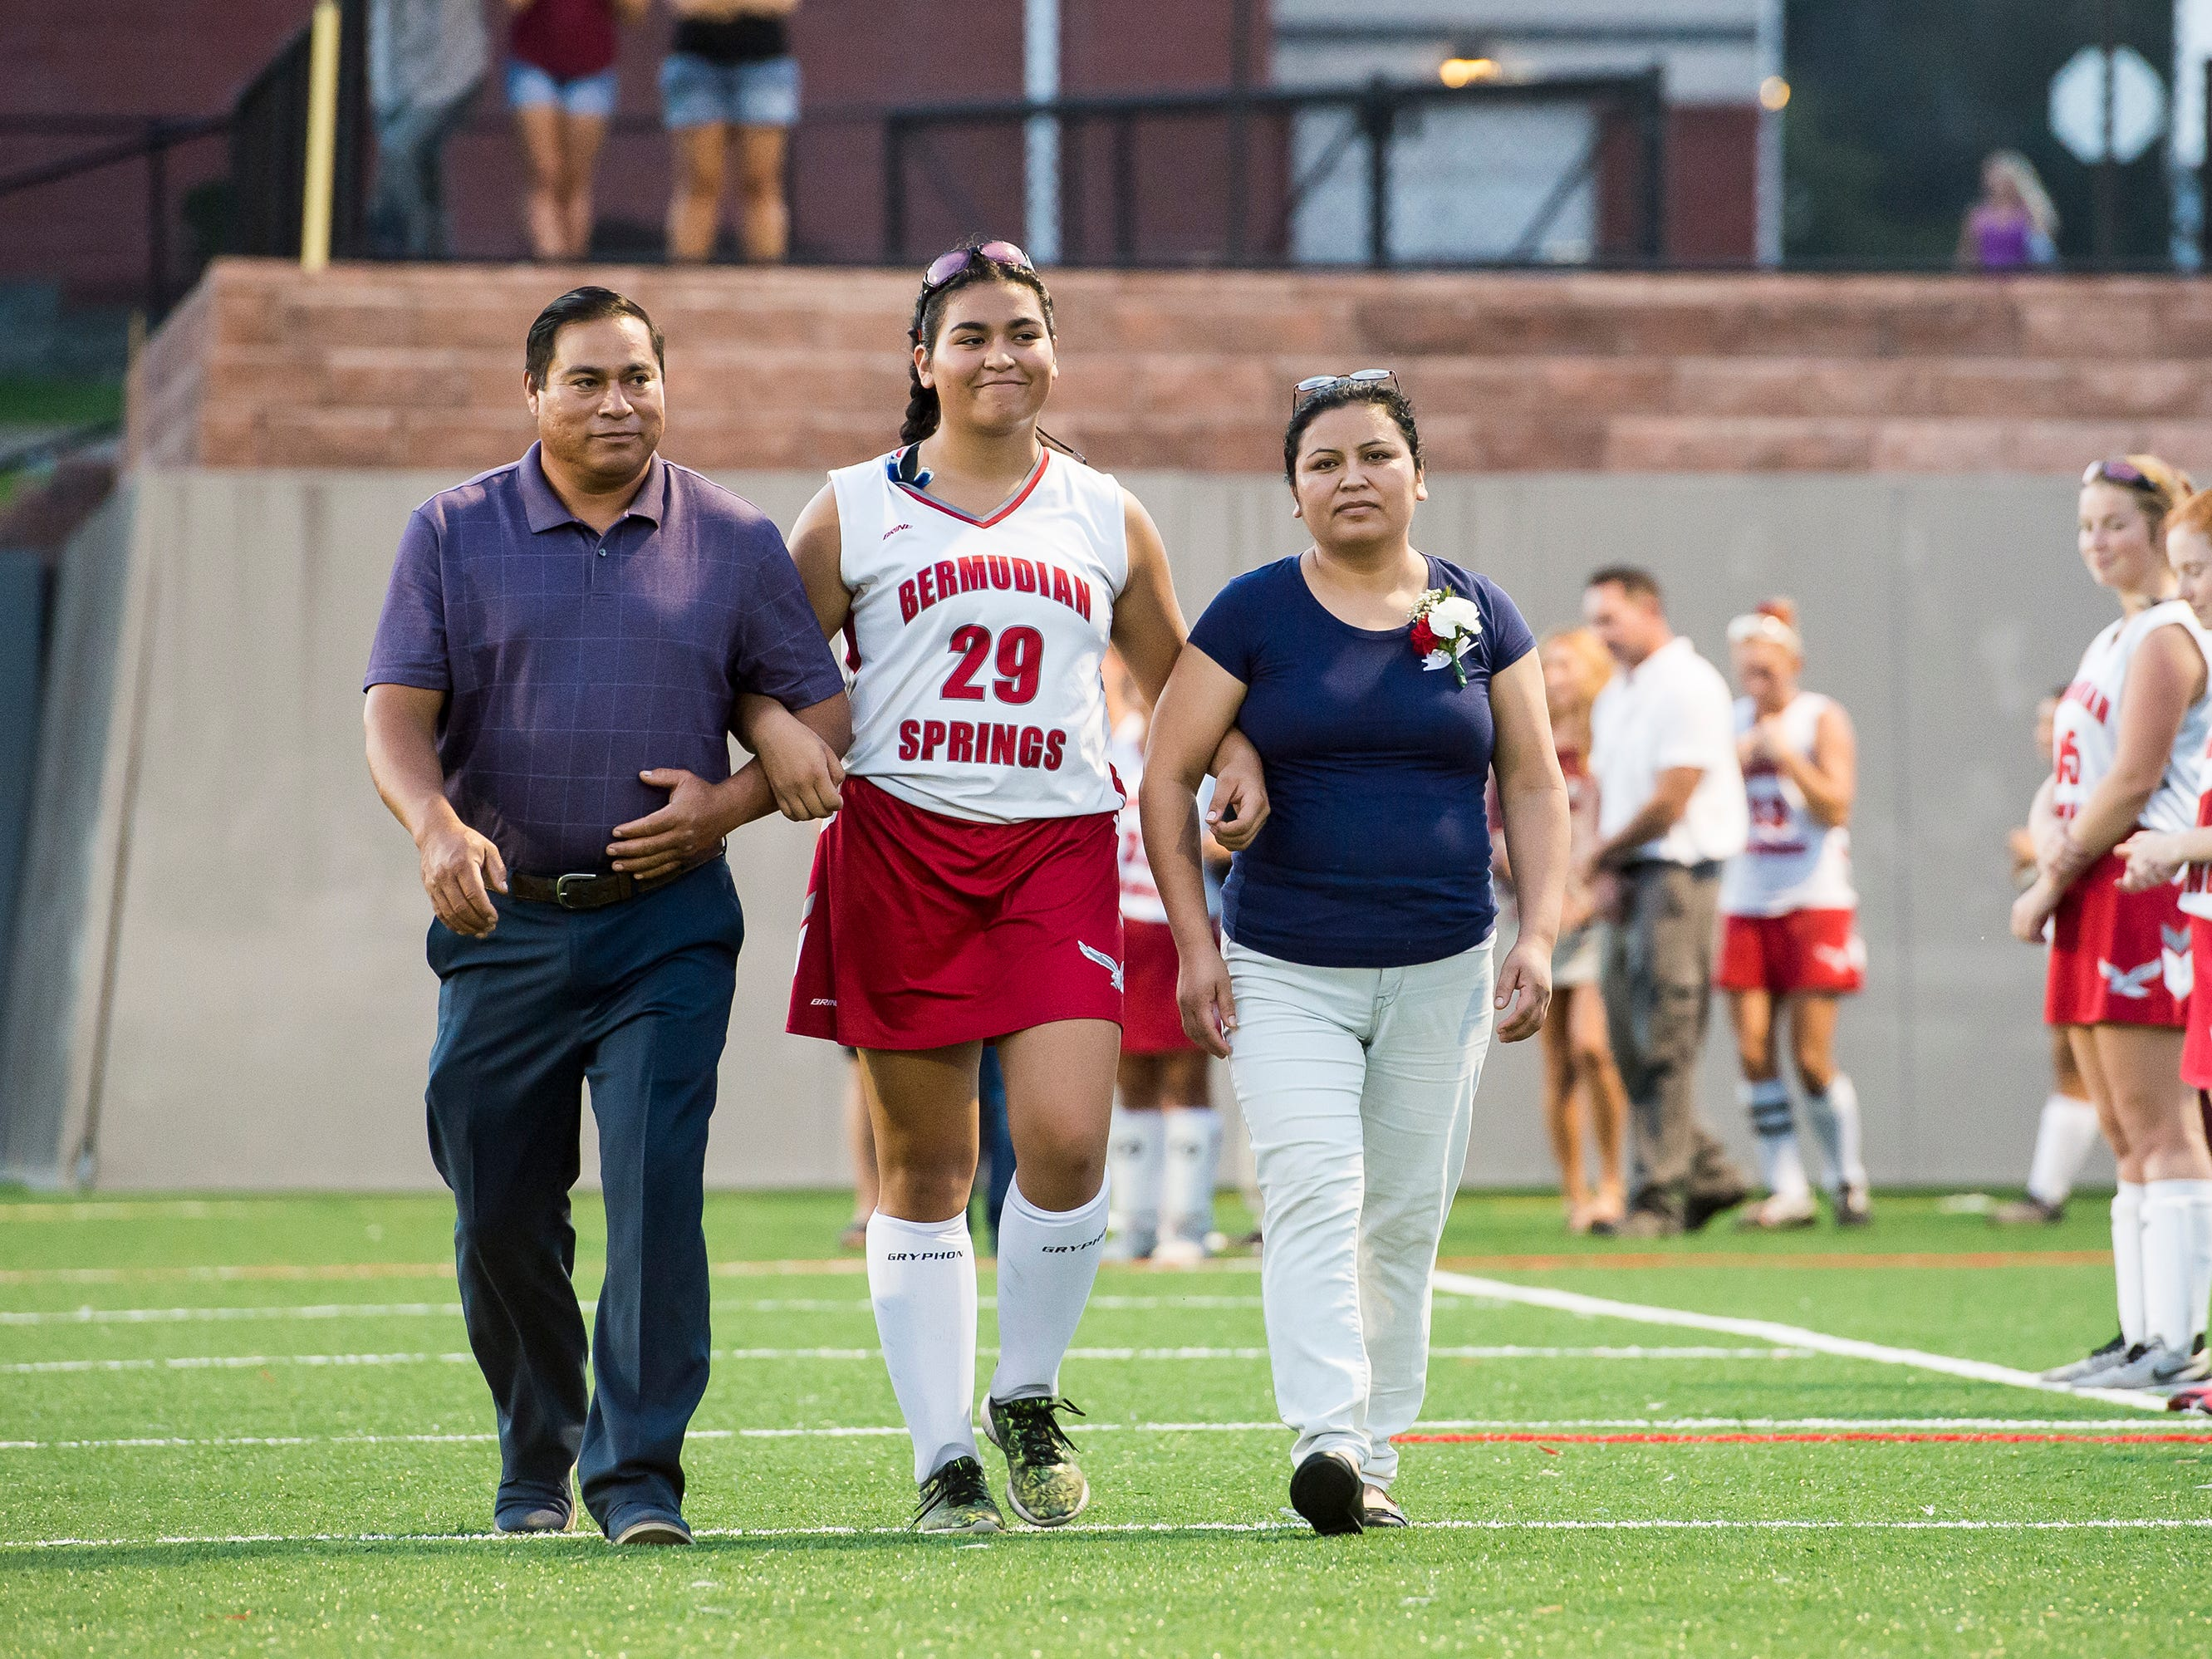 Bermudian Springs senior Jenn Garcia is recognized during a senior appreciation night following a game against Littlestown on Tuesday, October 9, 2018.